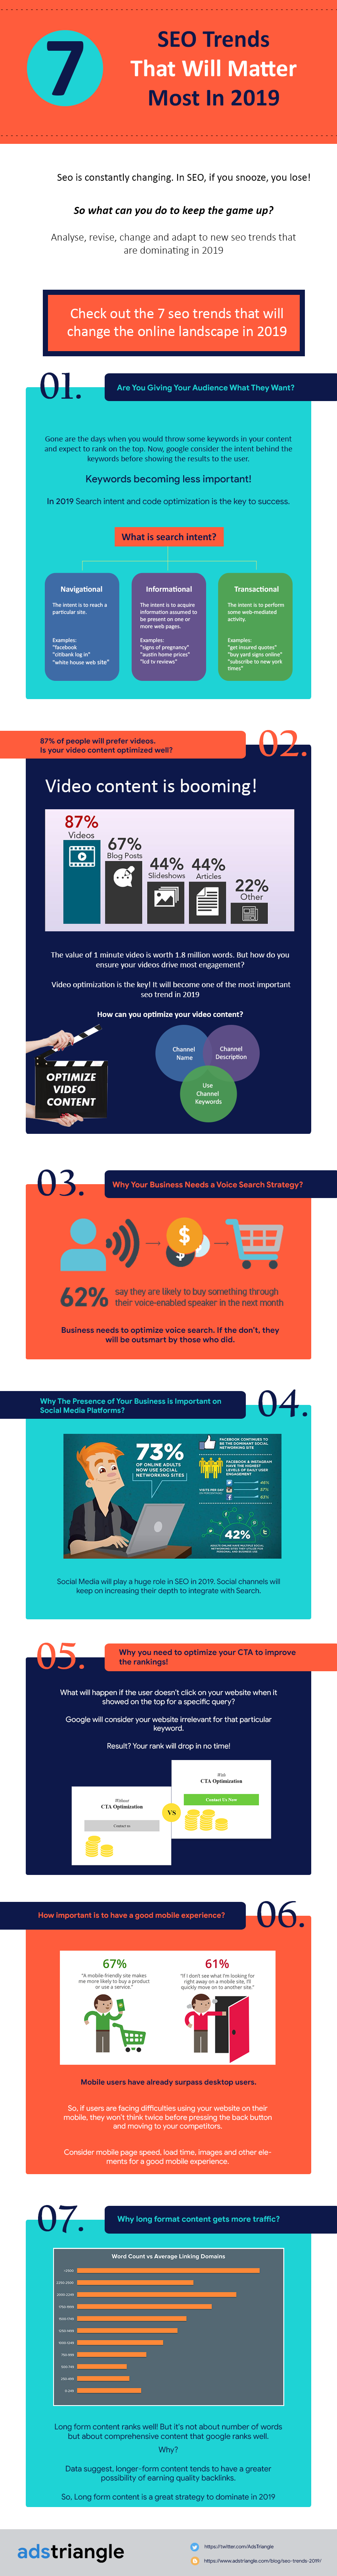 infographic-seo-trends-2019.png